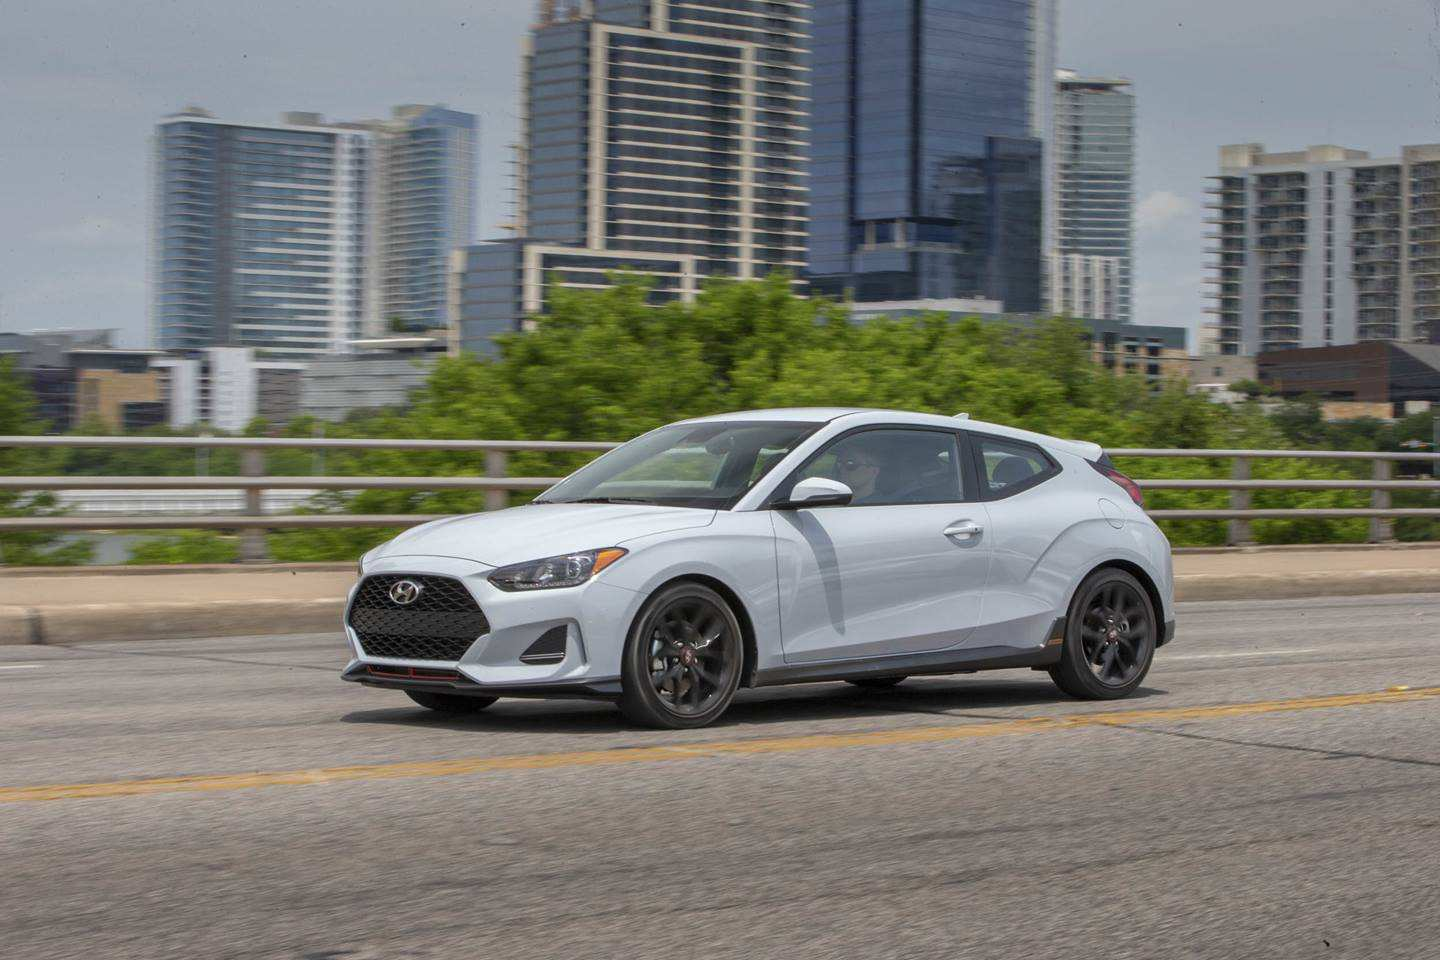 90 All New 2019 Hyundai Veloster Review Spy Shoot with 2019 Hyundai Veloster Review